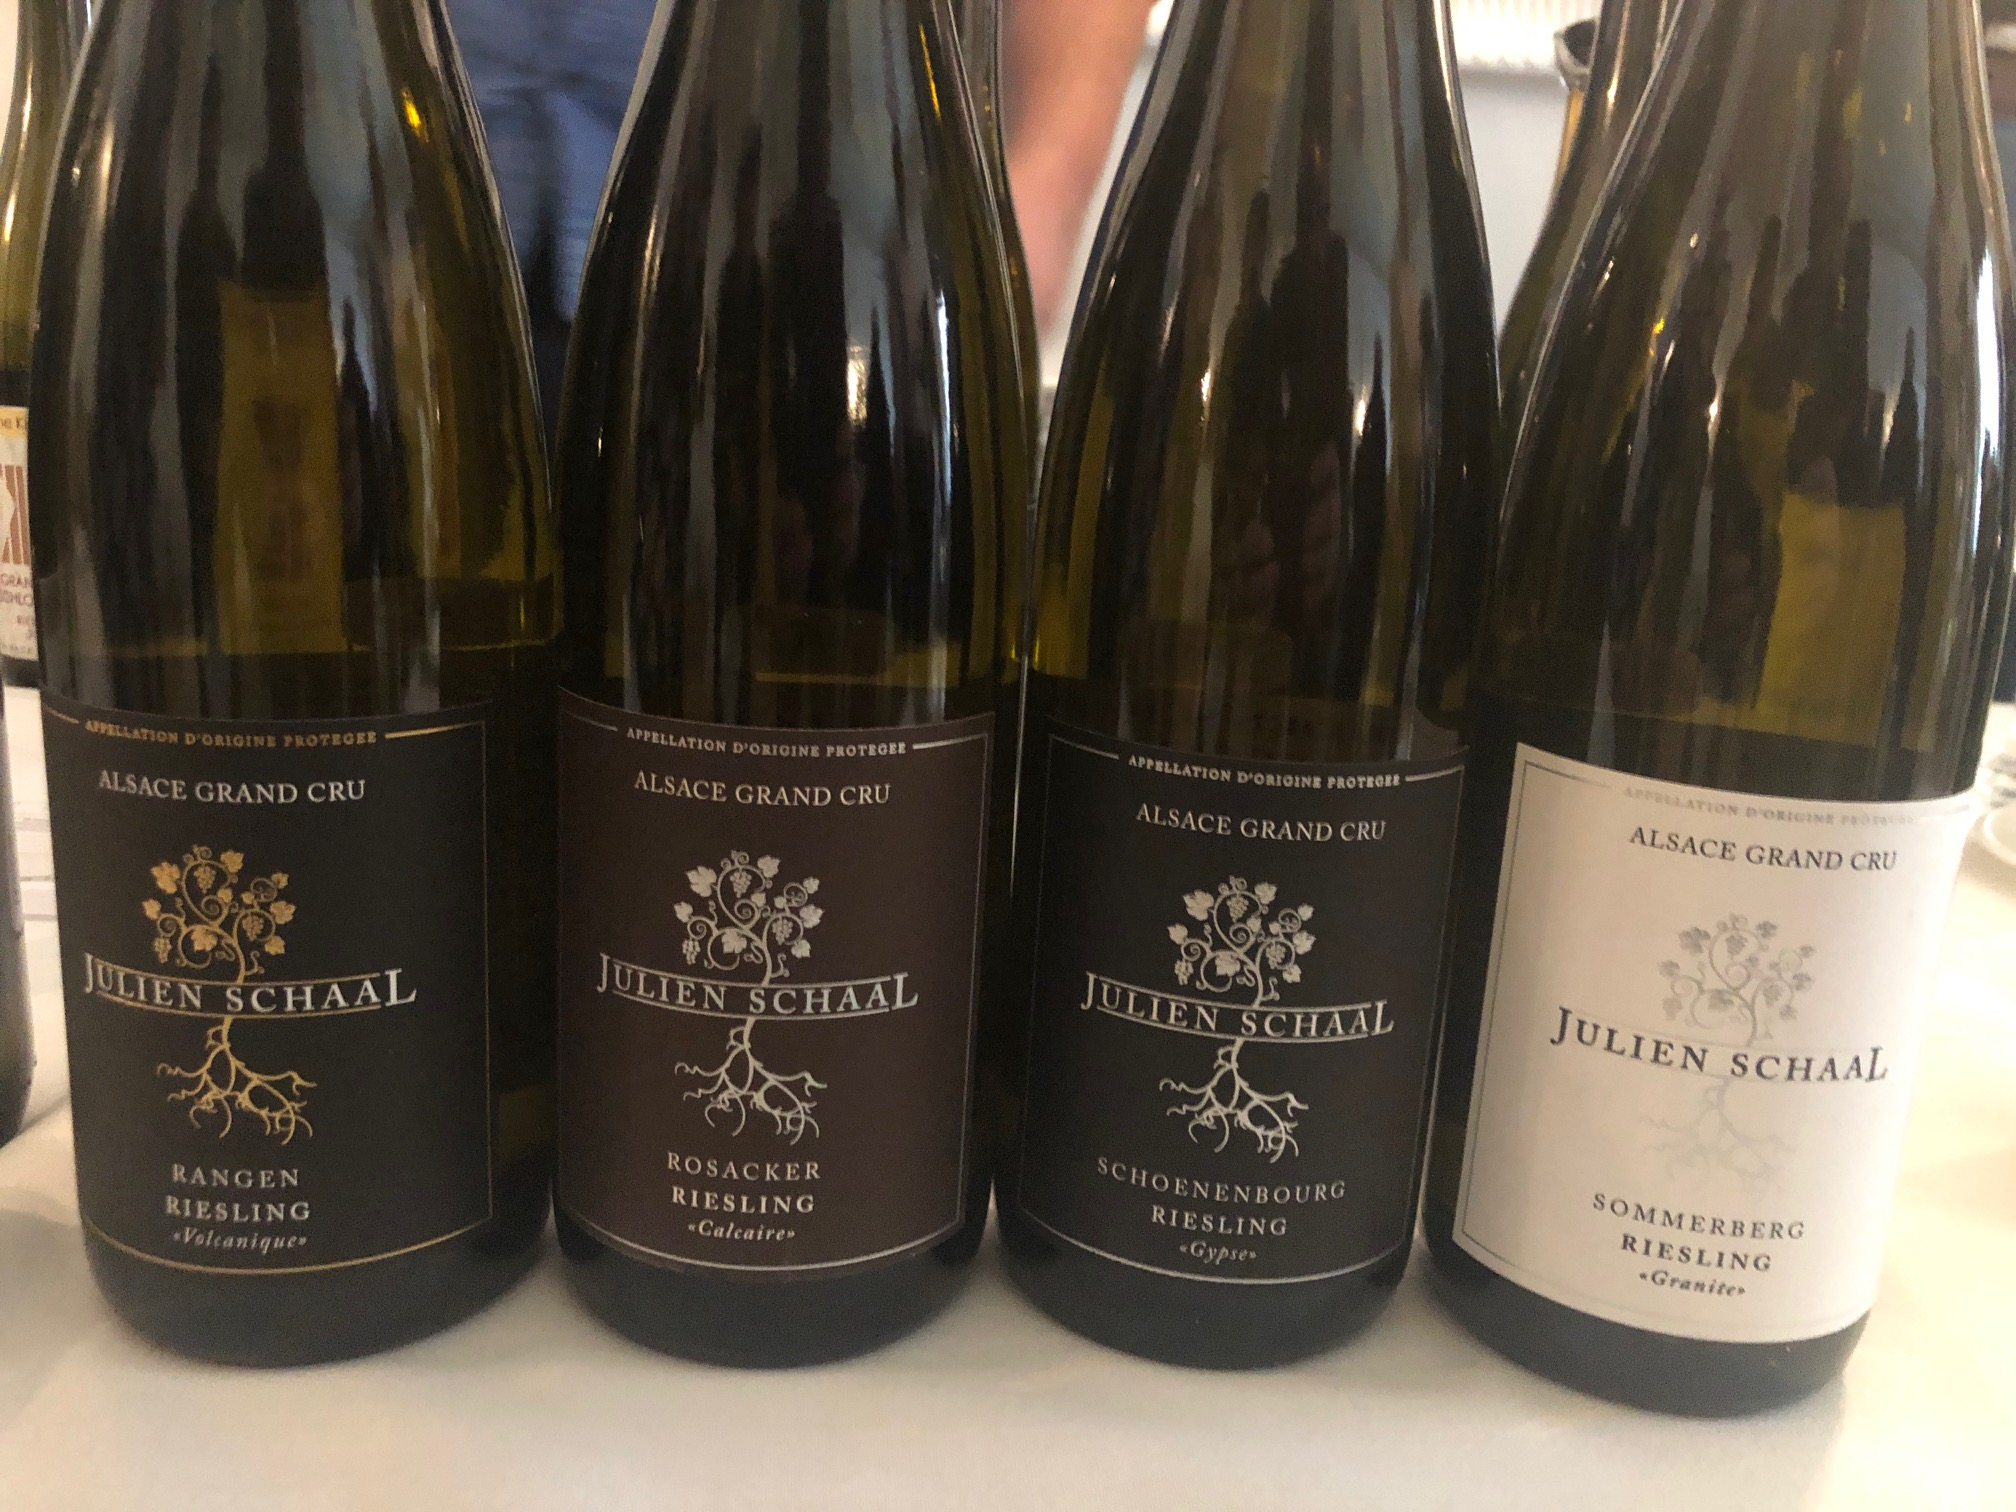 Harmony Cuisine Saint Julien alsace wine: which top wines should be on your buying radar?